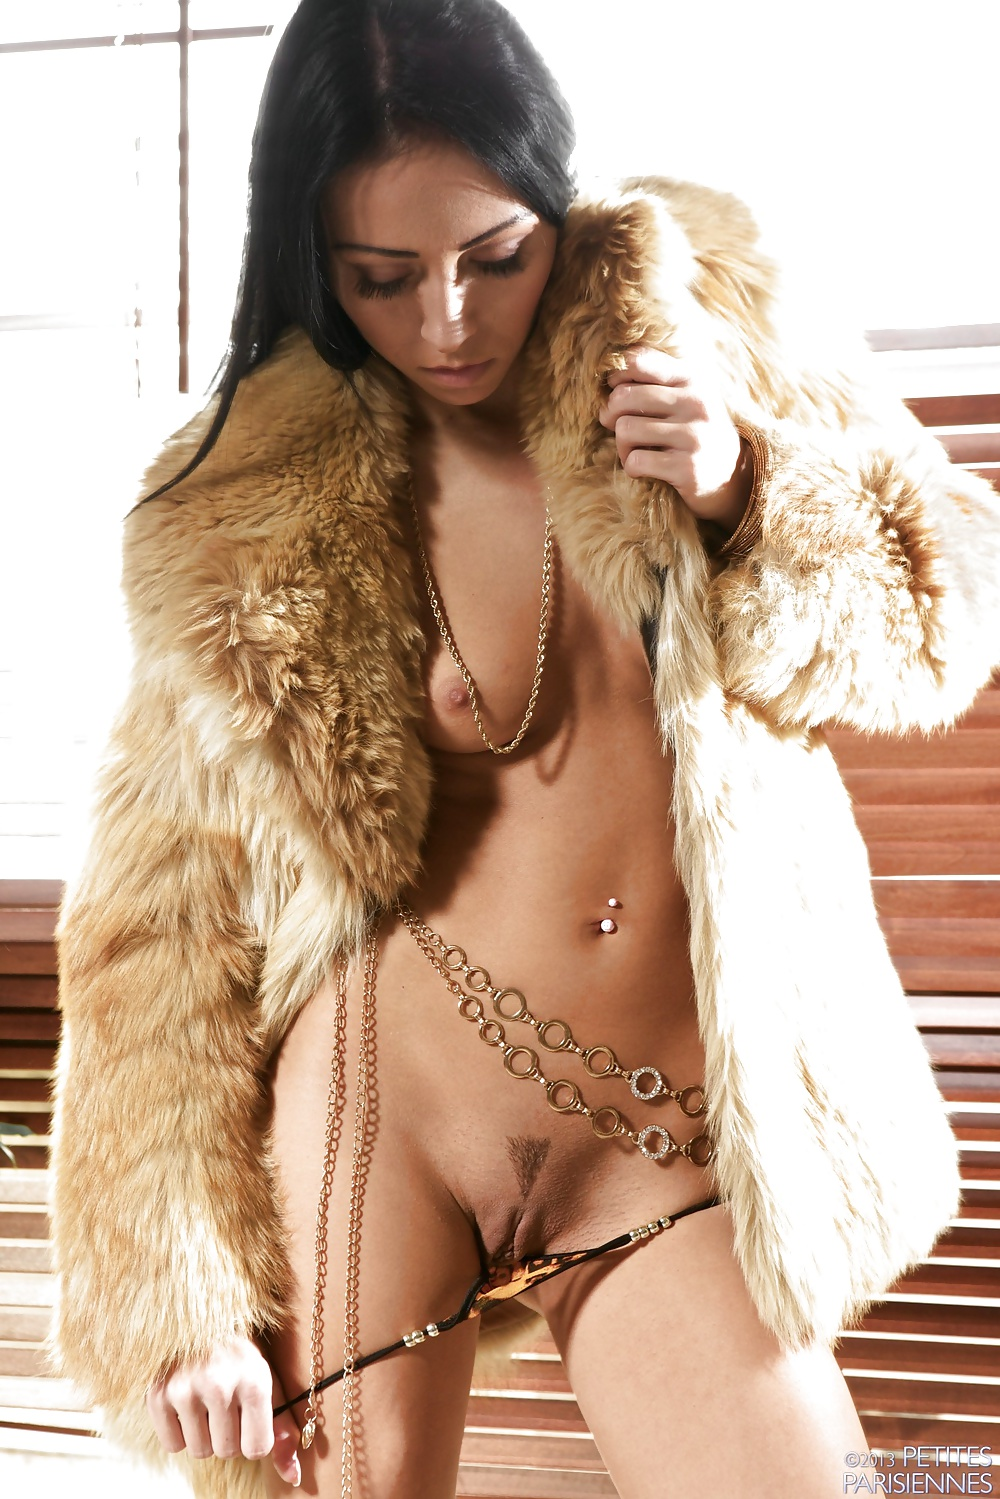 Naked Girl Is In A Fur Coat Stock Photo